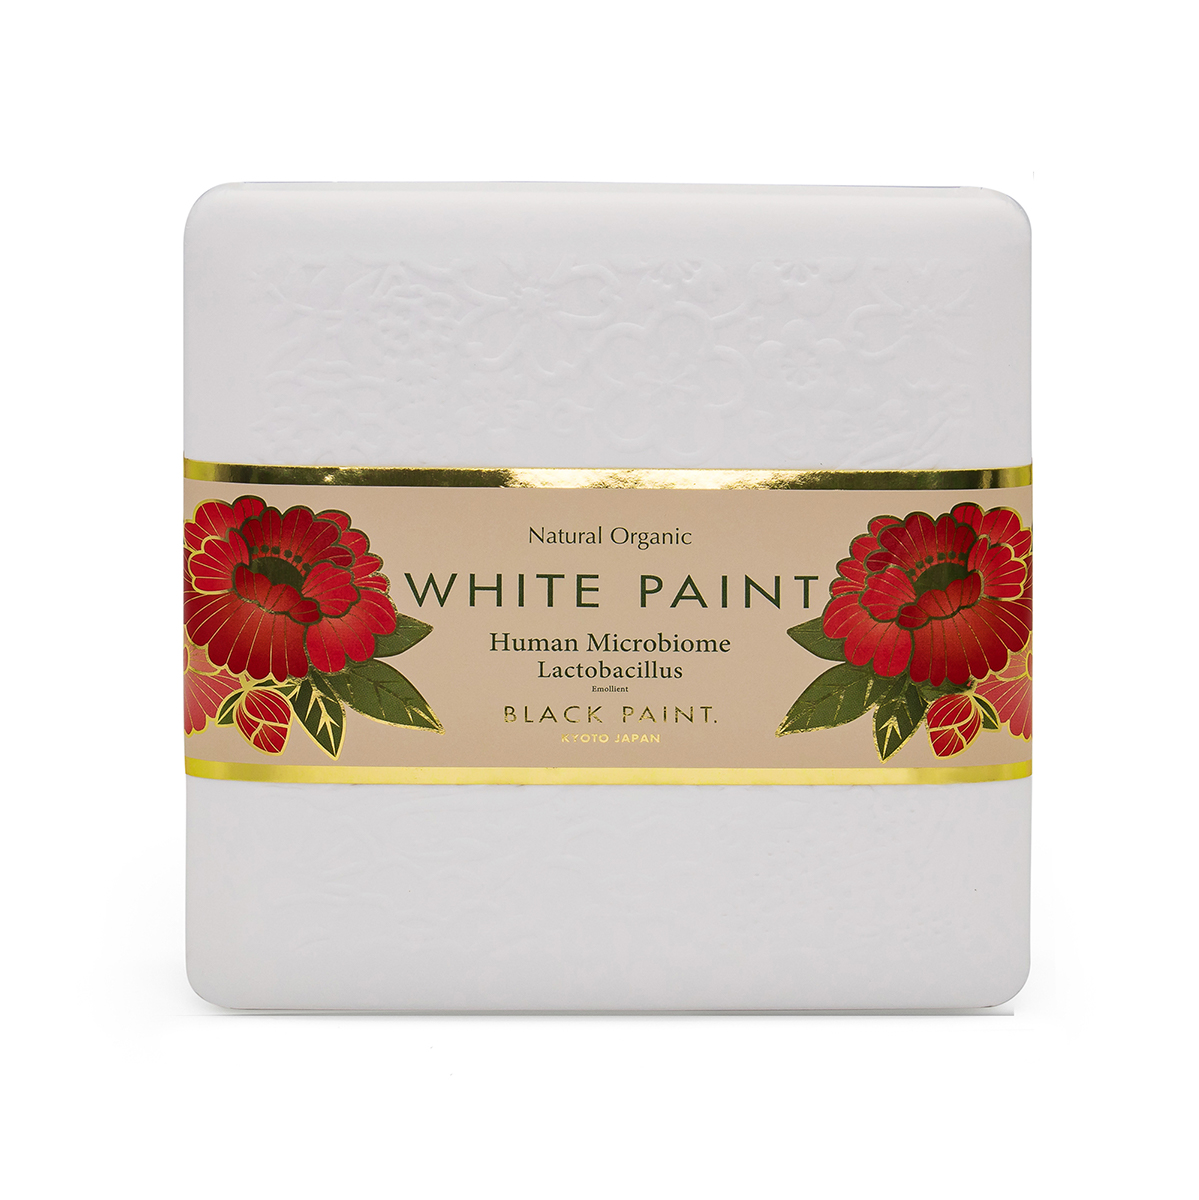 White Paint Soap 60g with Human Microbiome - front